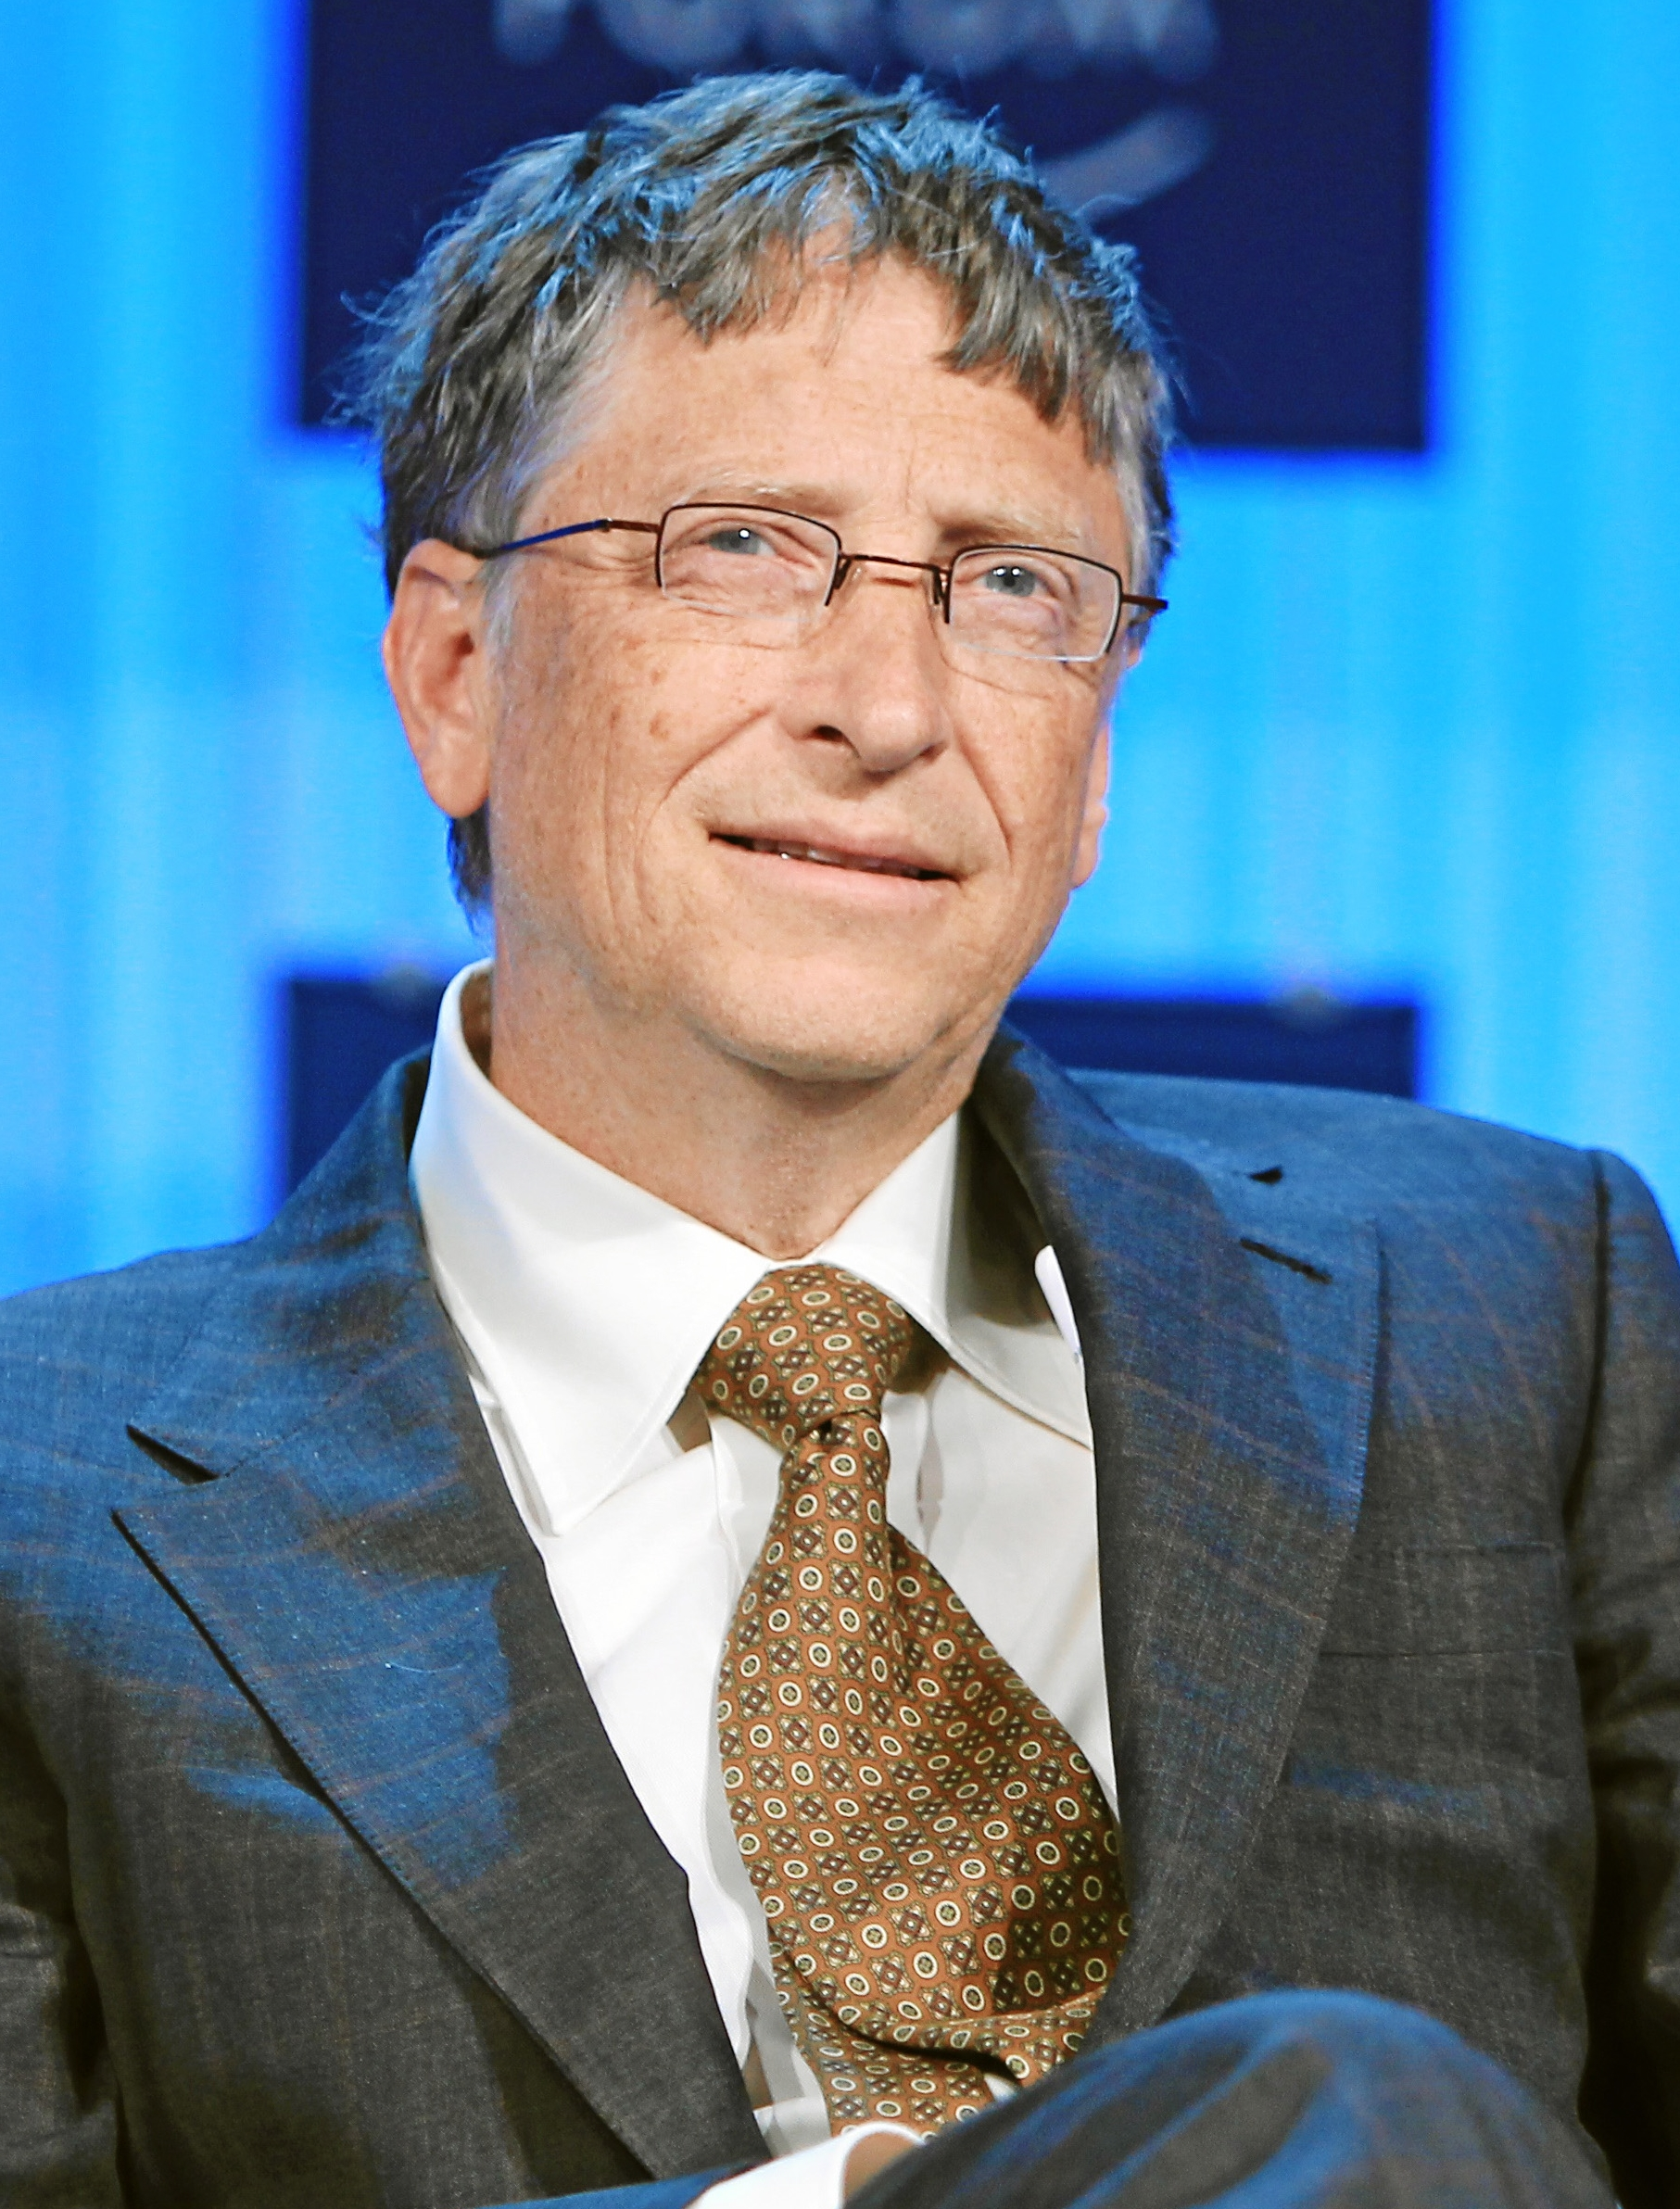 Bill Gates Avatar